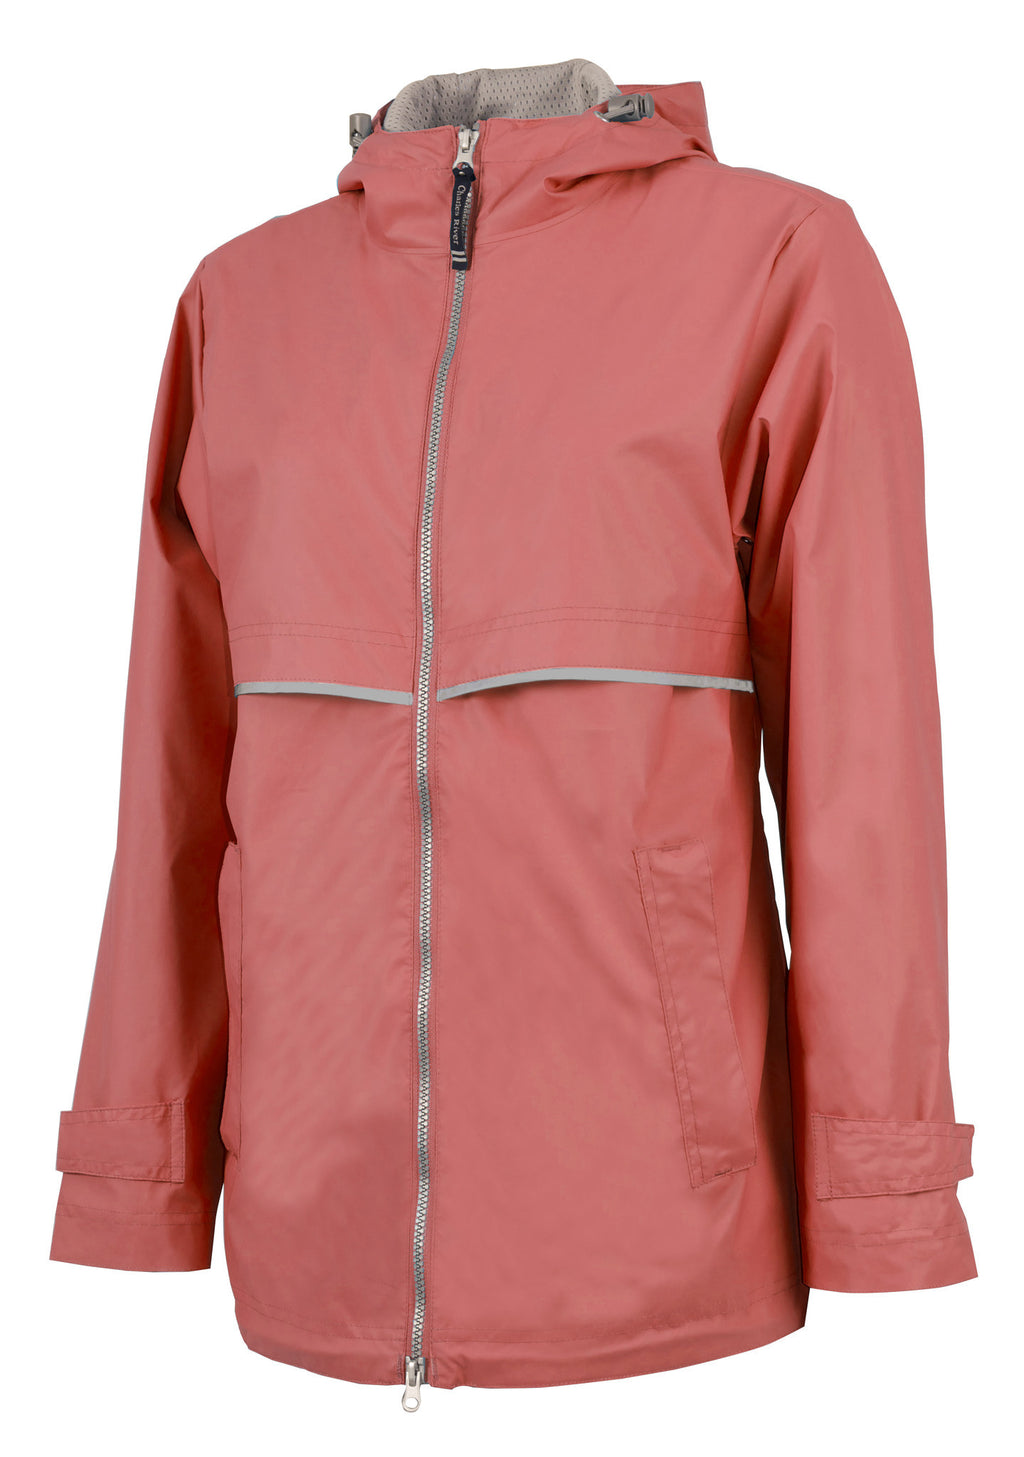 Charles River Rain Jacket w/ Monogram- Spring Colors